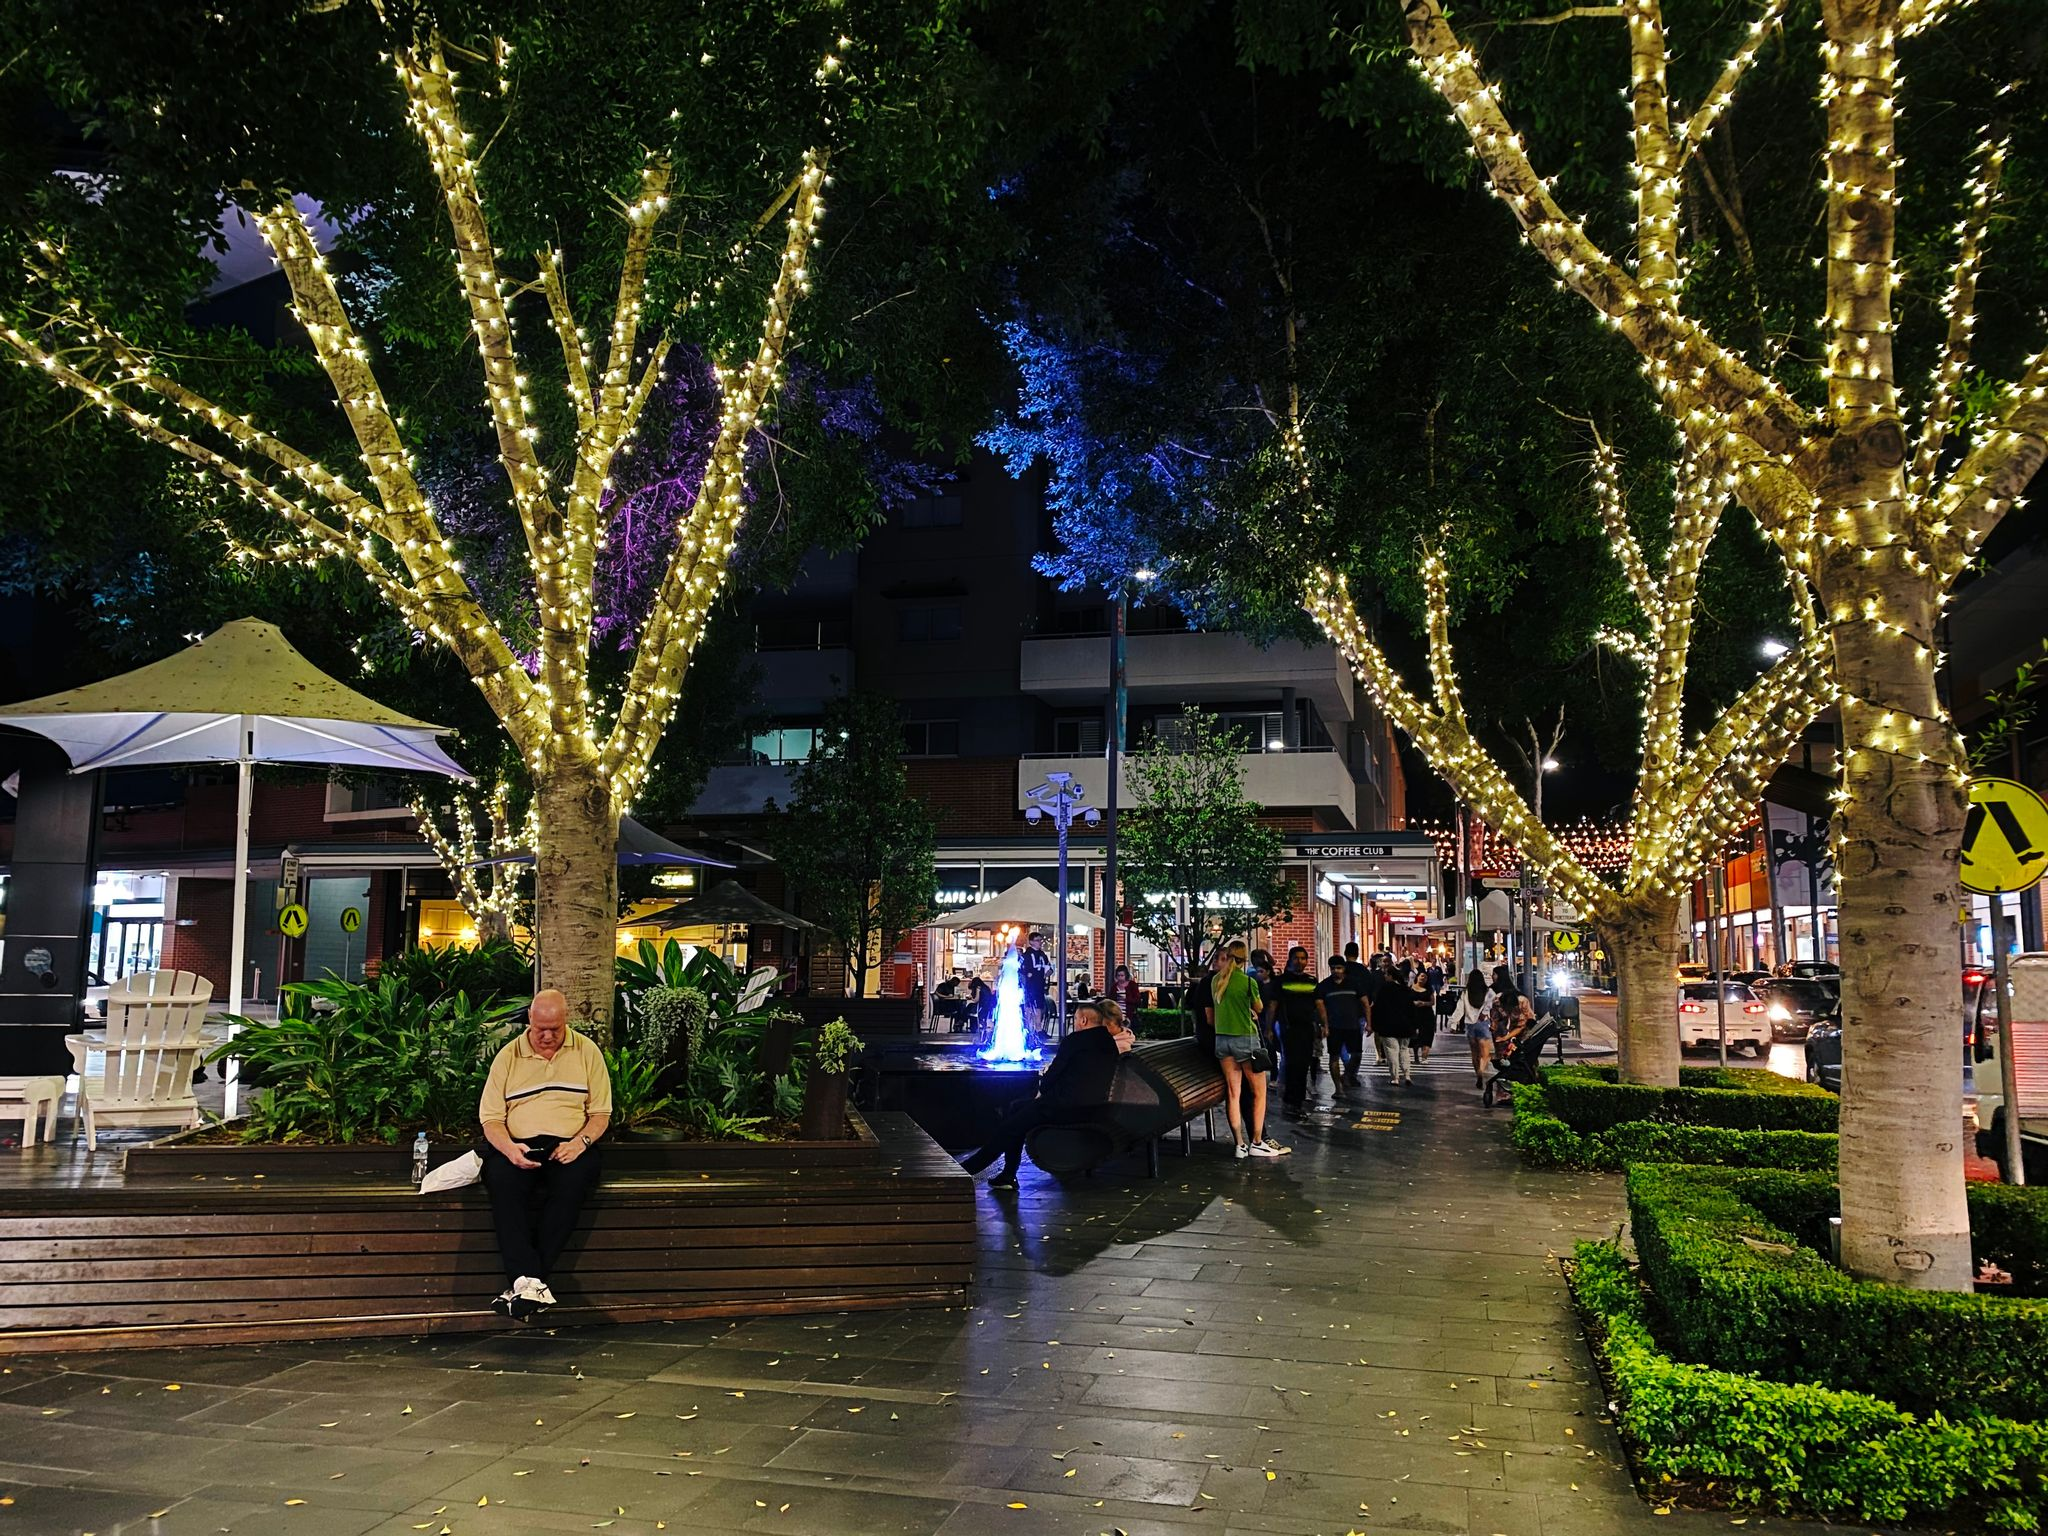 A nighttime shot of several trees at the centre of Rouse Hill Town Centre, all strung up with lights around the trunks.